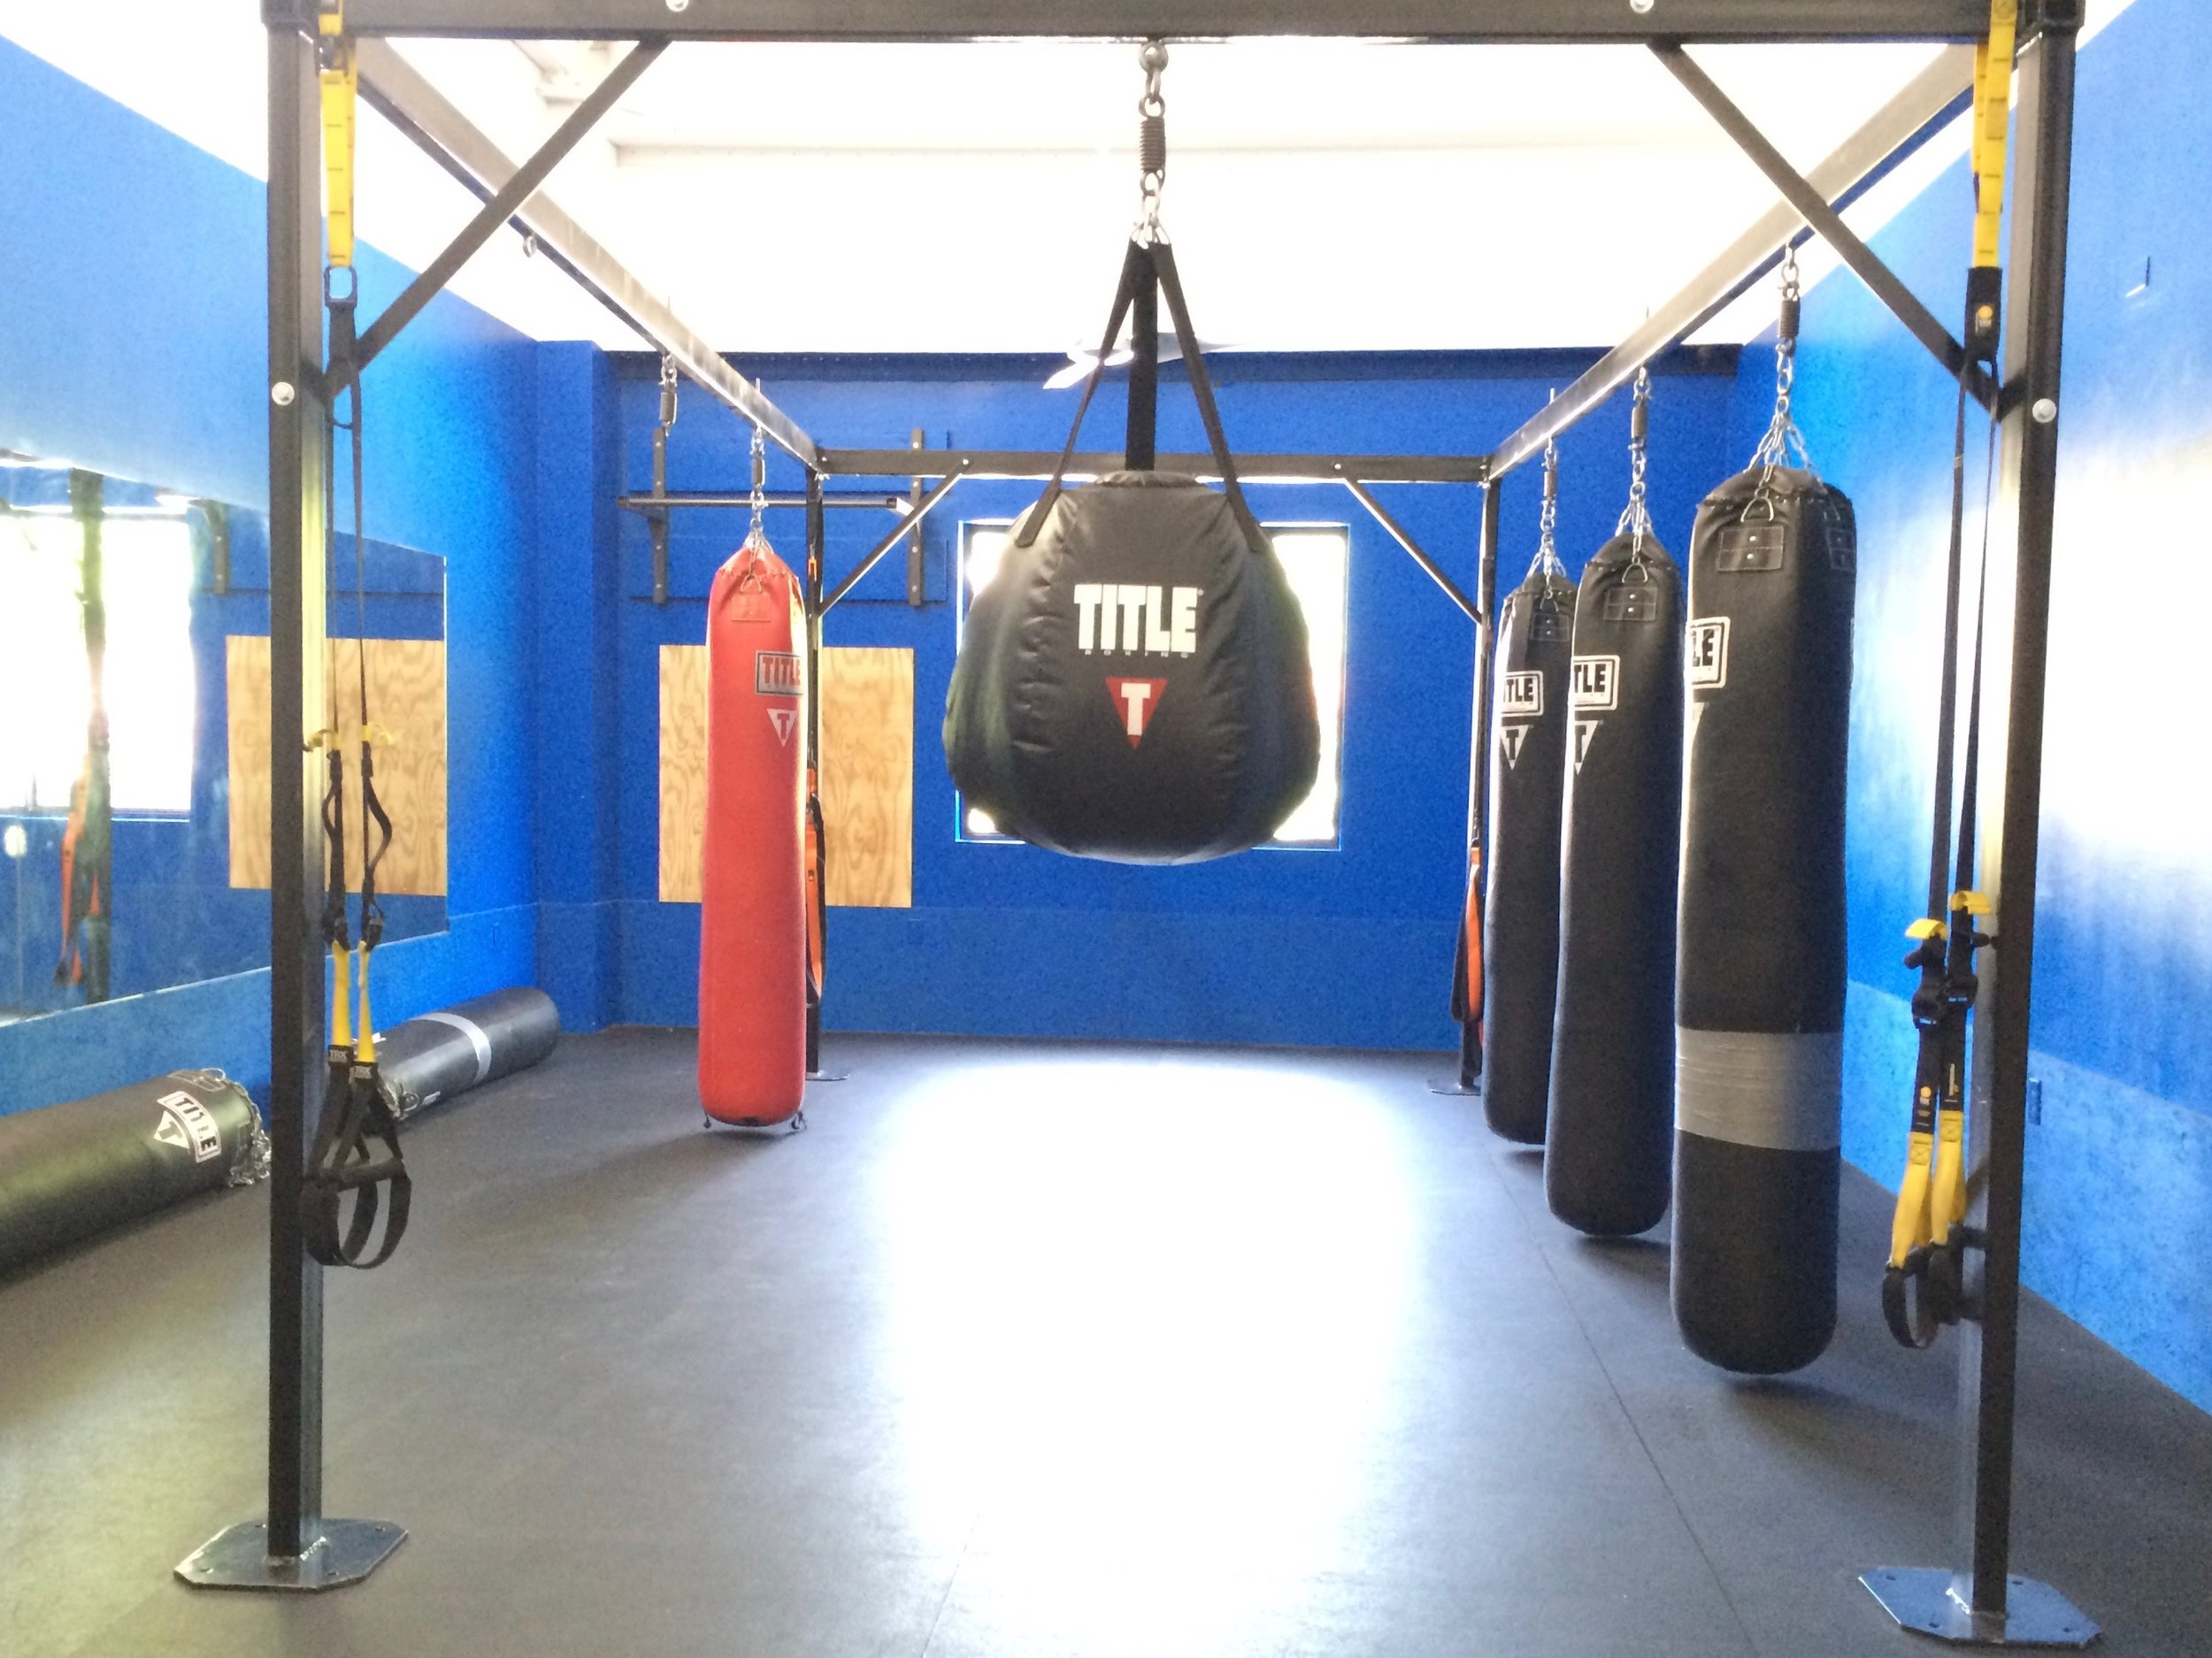 Training Gear - Everlast Ultimate 8-Station Boxing RigTitle Muai Thai Heavy BagsTitle Uppercut Heavy BagTitle 150lb Ultra Heavy BagTitle Round TimerTitle Speed Bag w Pro Swivel*Gloves Required. Some Freebie Gloves Available, Also Rentals for $2 or Purchase a Set From Us